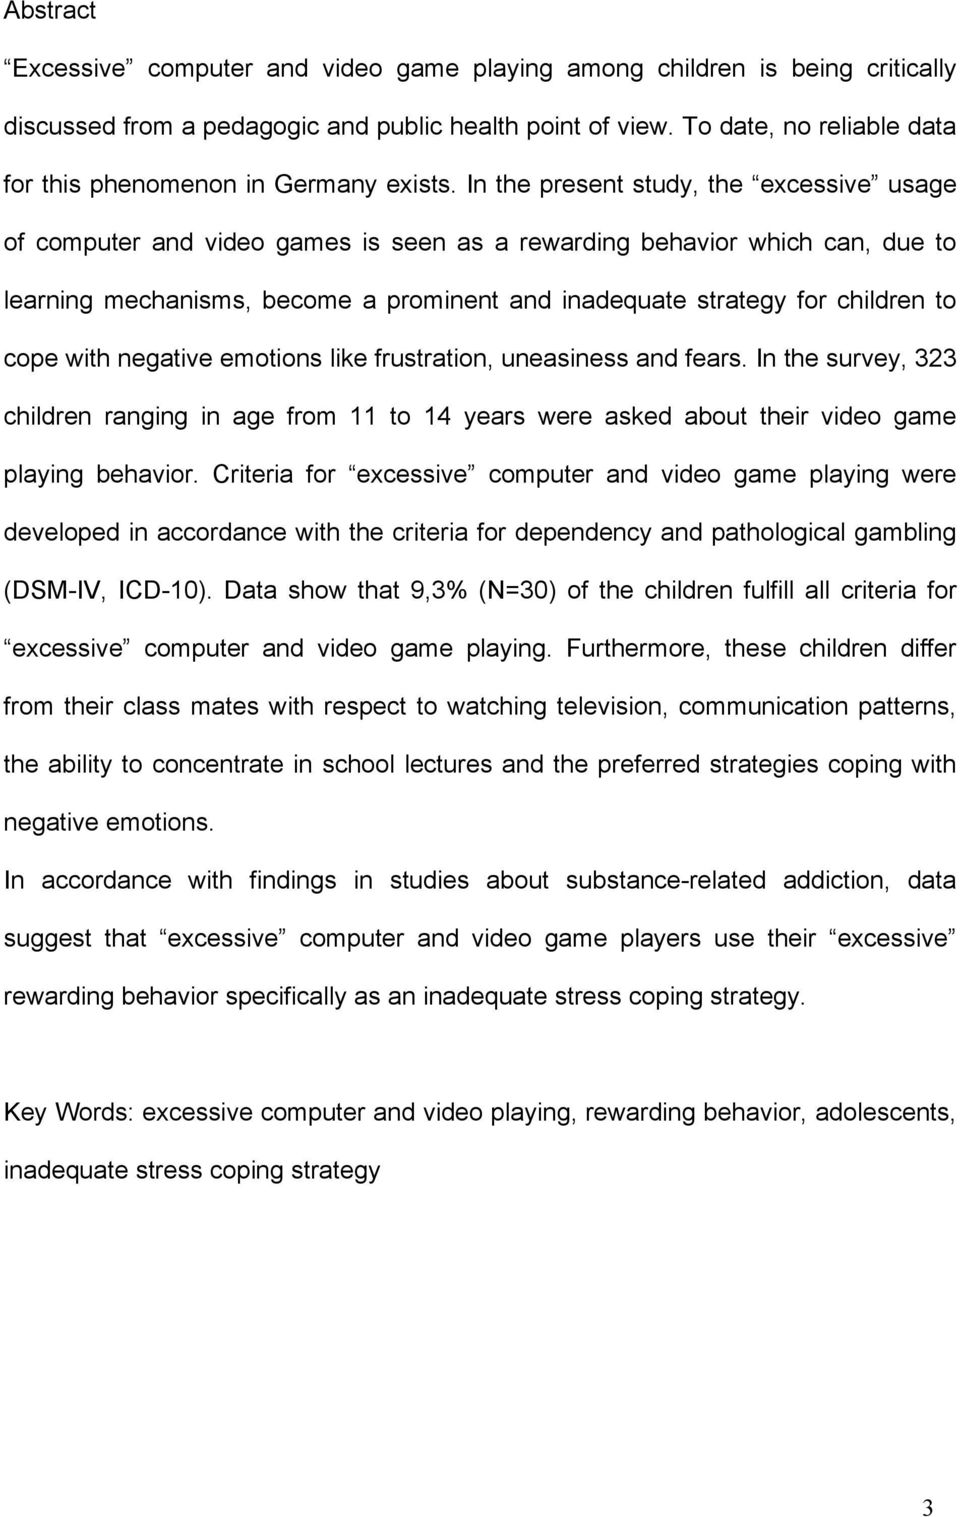 In the present study, the excessive usage of computer and video games is seen as a rewarding behavior which can, due to learning mechanisms, become a prominent and inadequate strategy for children to